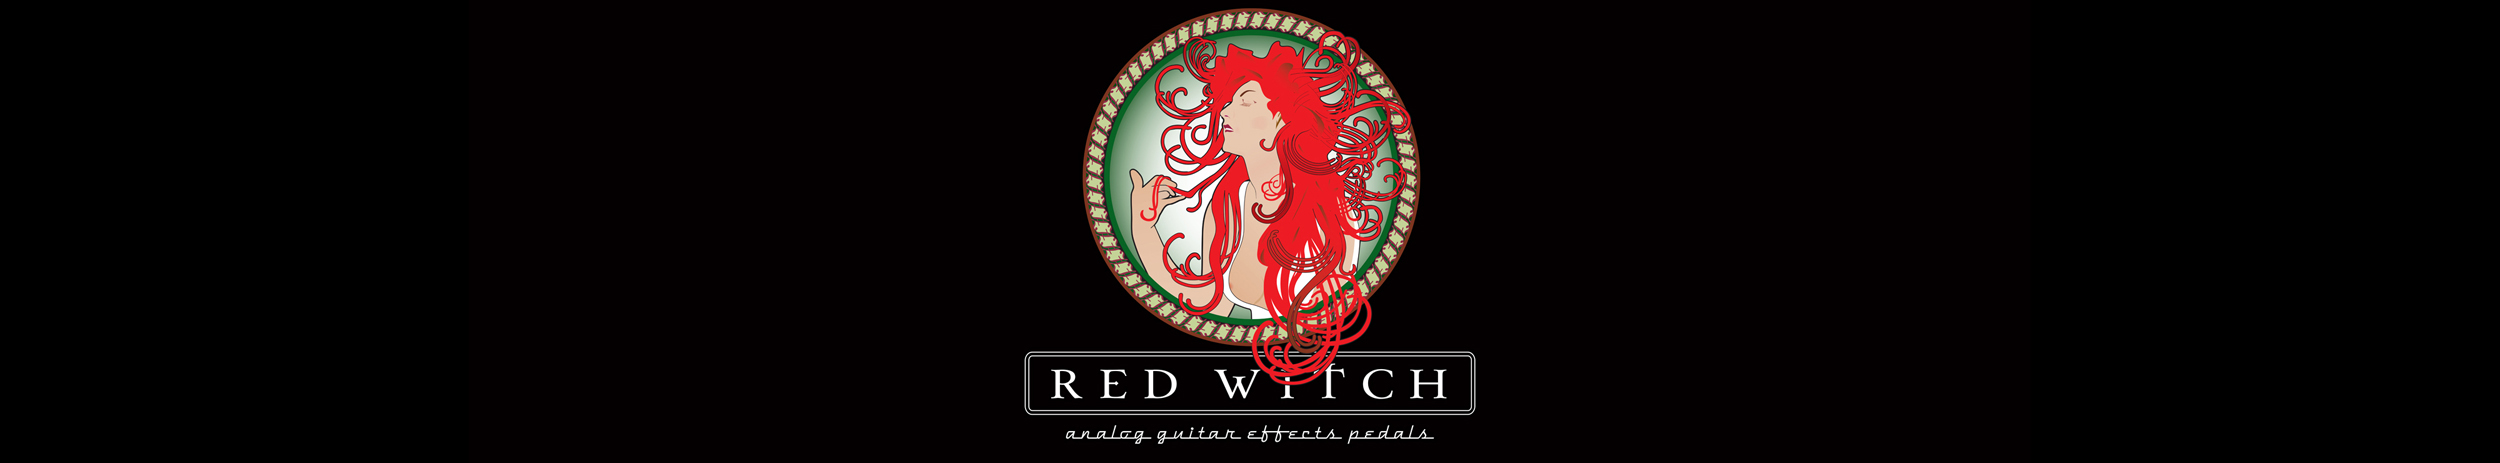 Red Witch Pedals- collection